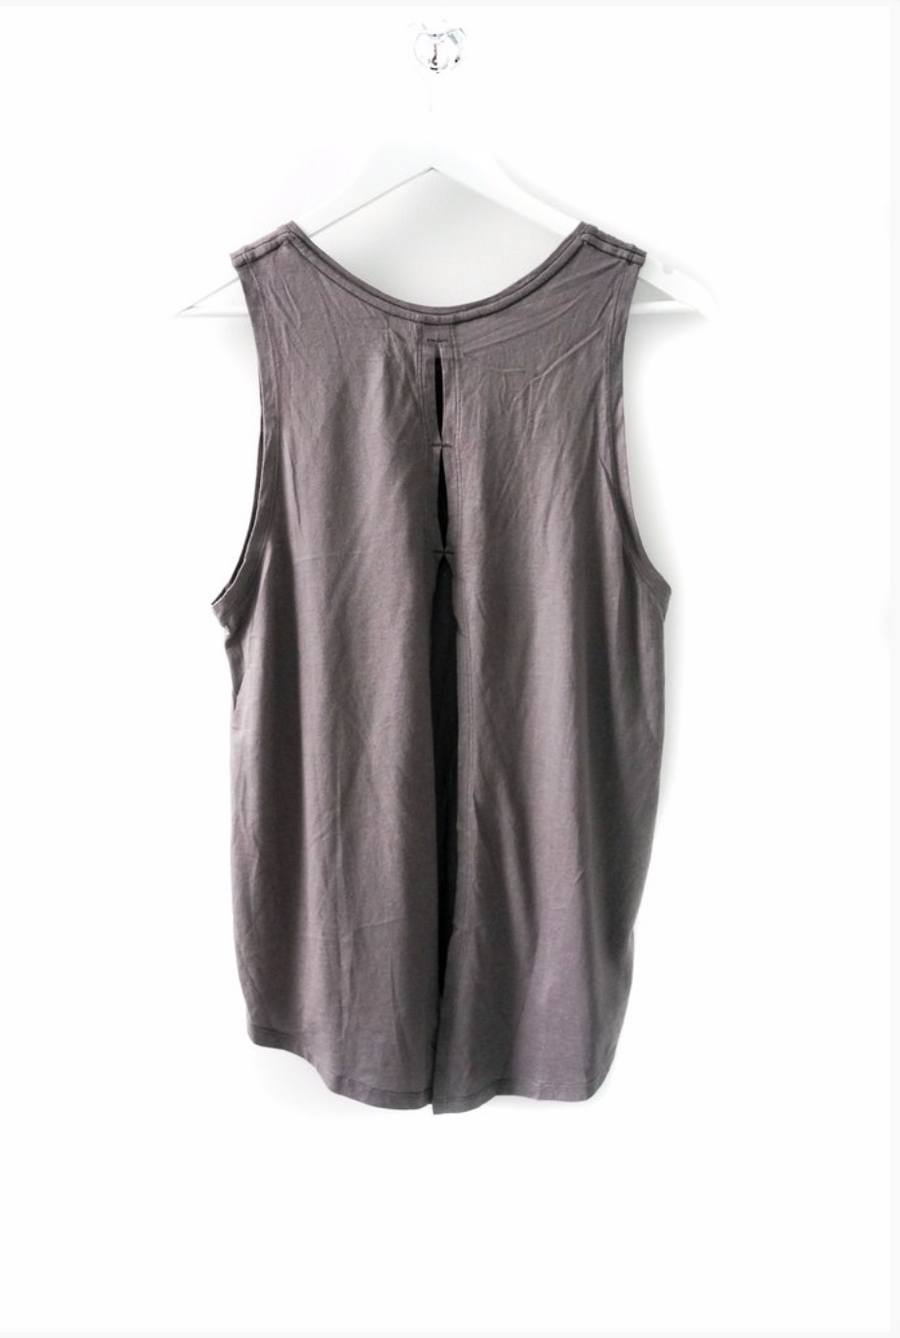 Day Dreamer Grey Super Soft Ladies Tank Top